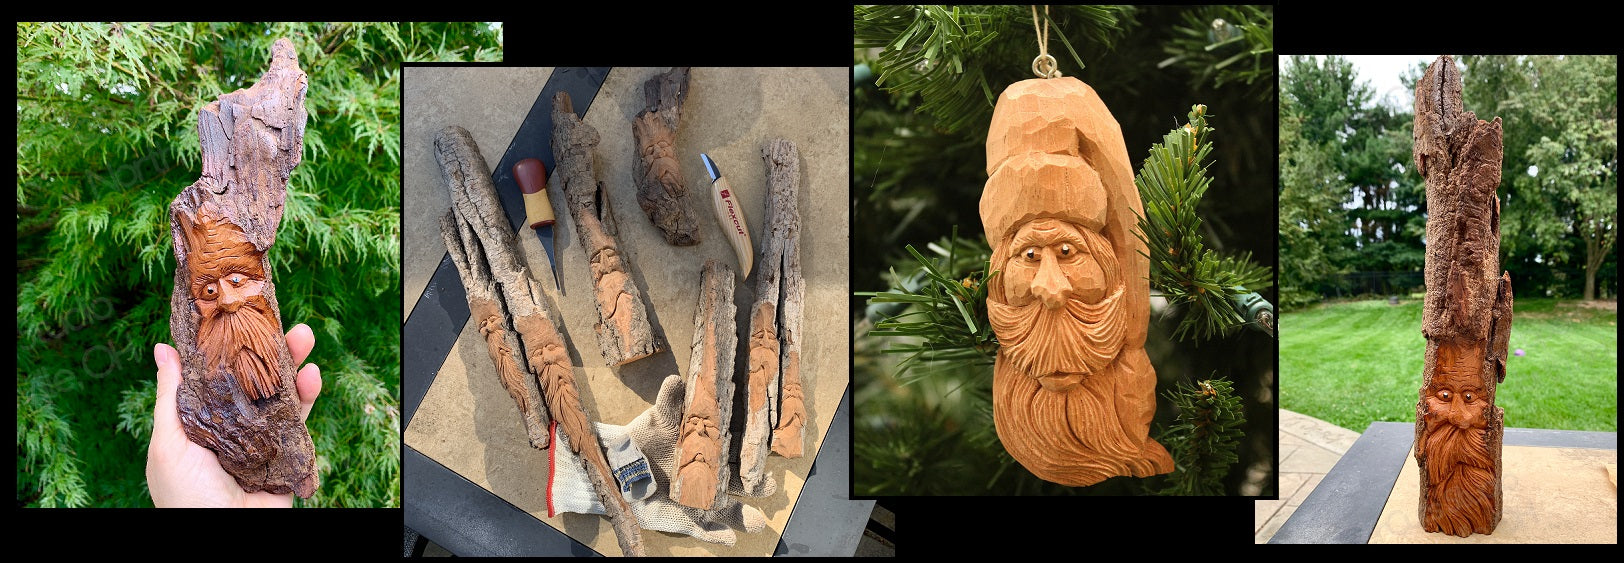 woodcarving pictures